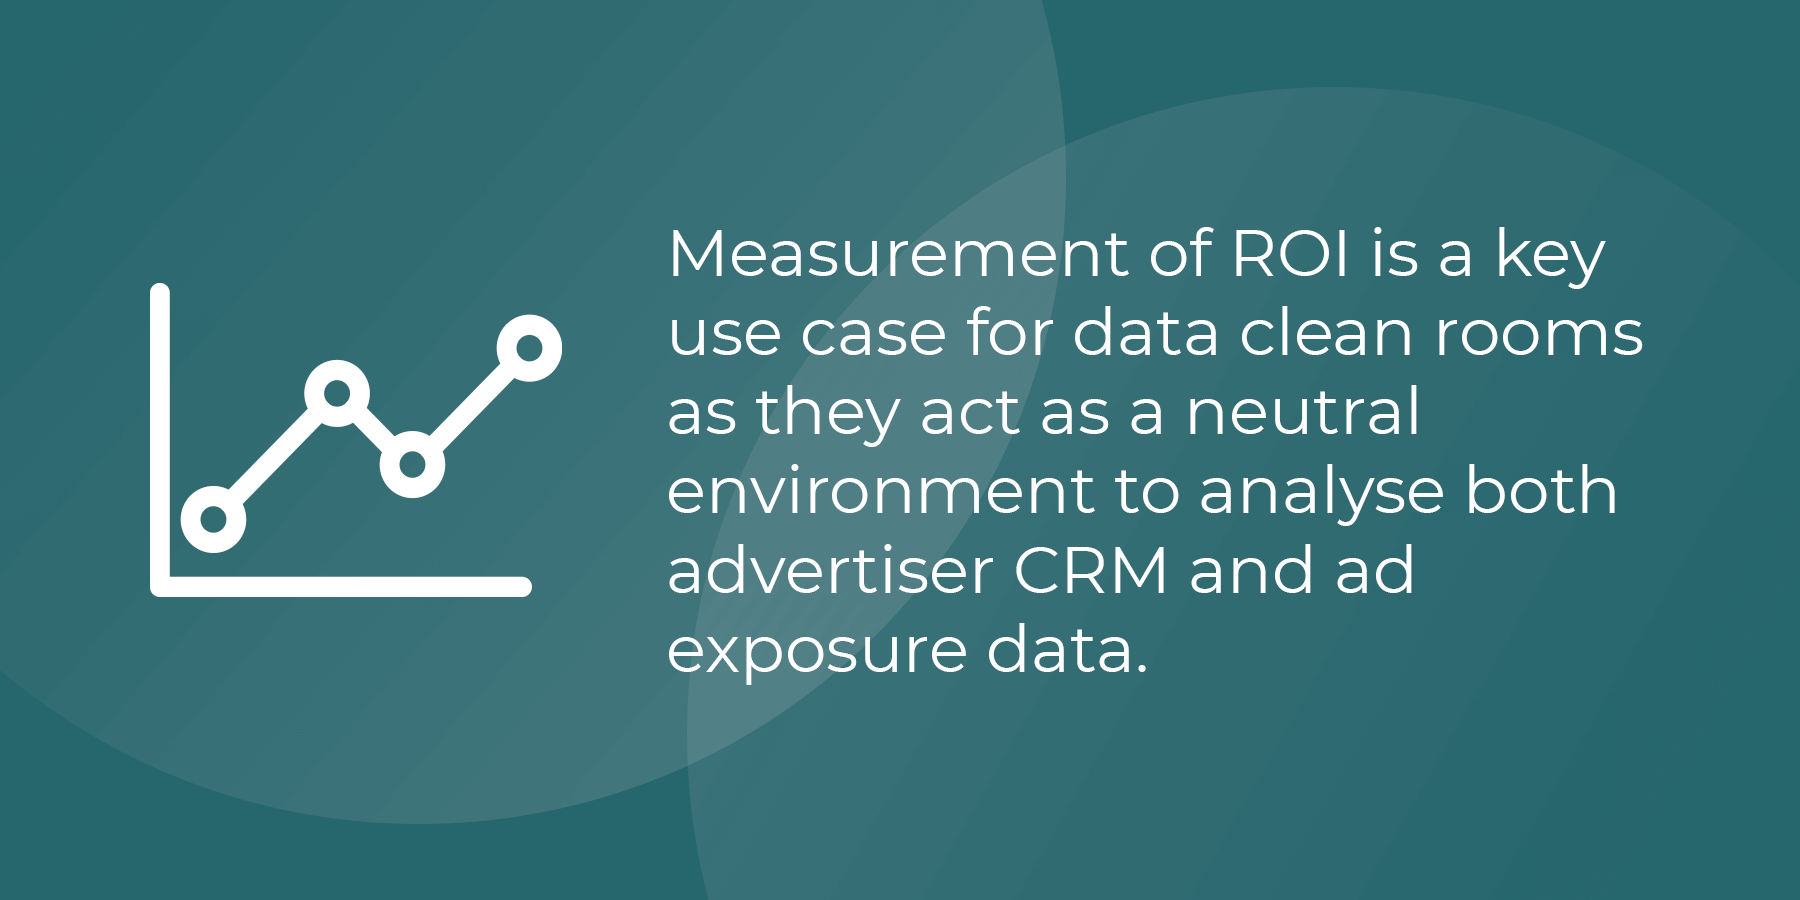 Measurement of ROi is a key use case for data clean rooms